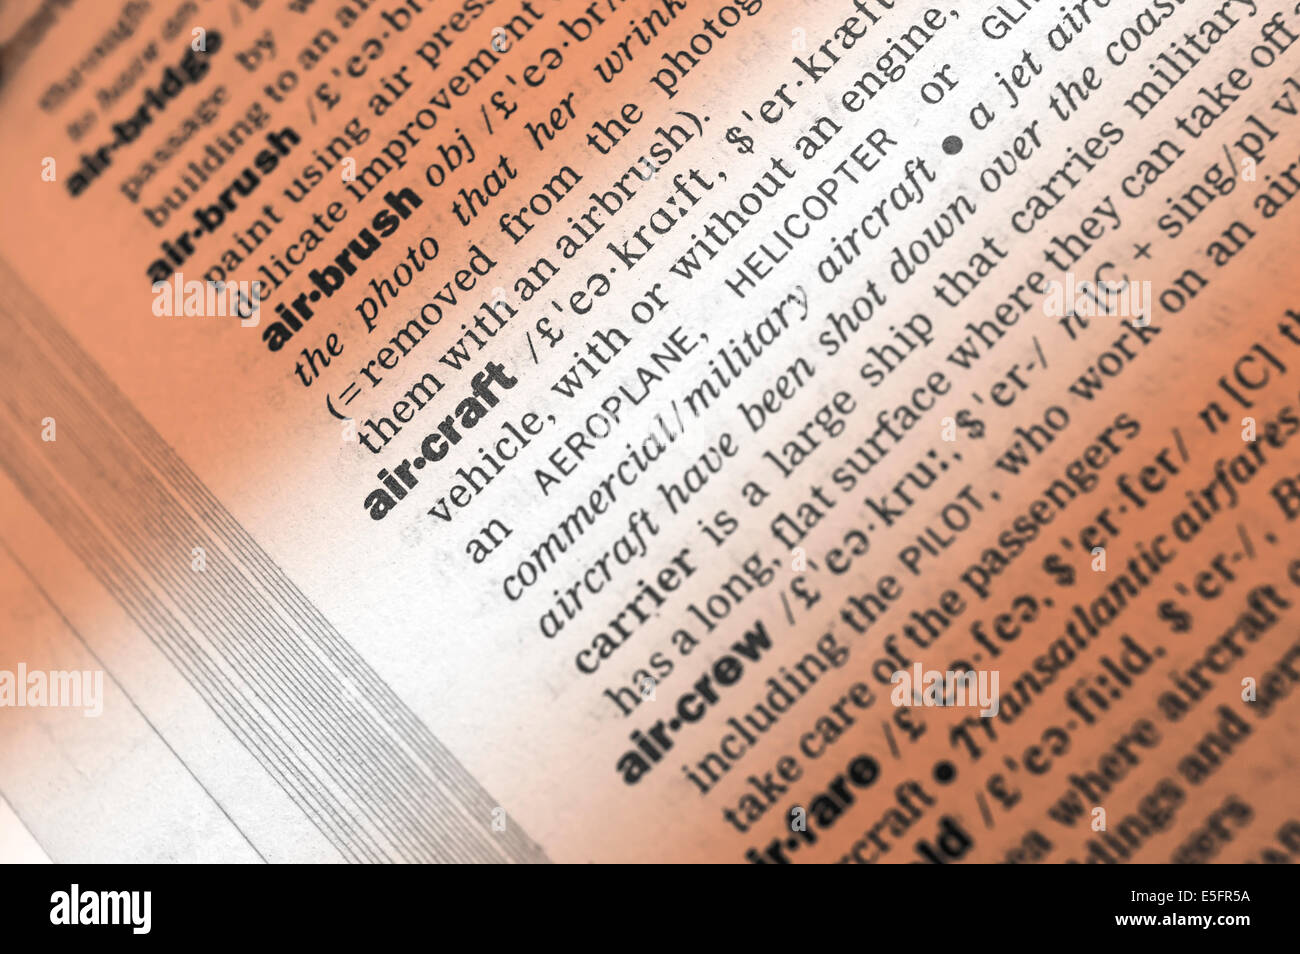 Dictionary words and phrases relating to air craft. Selective focus on air craft word - Stock Image